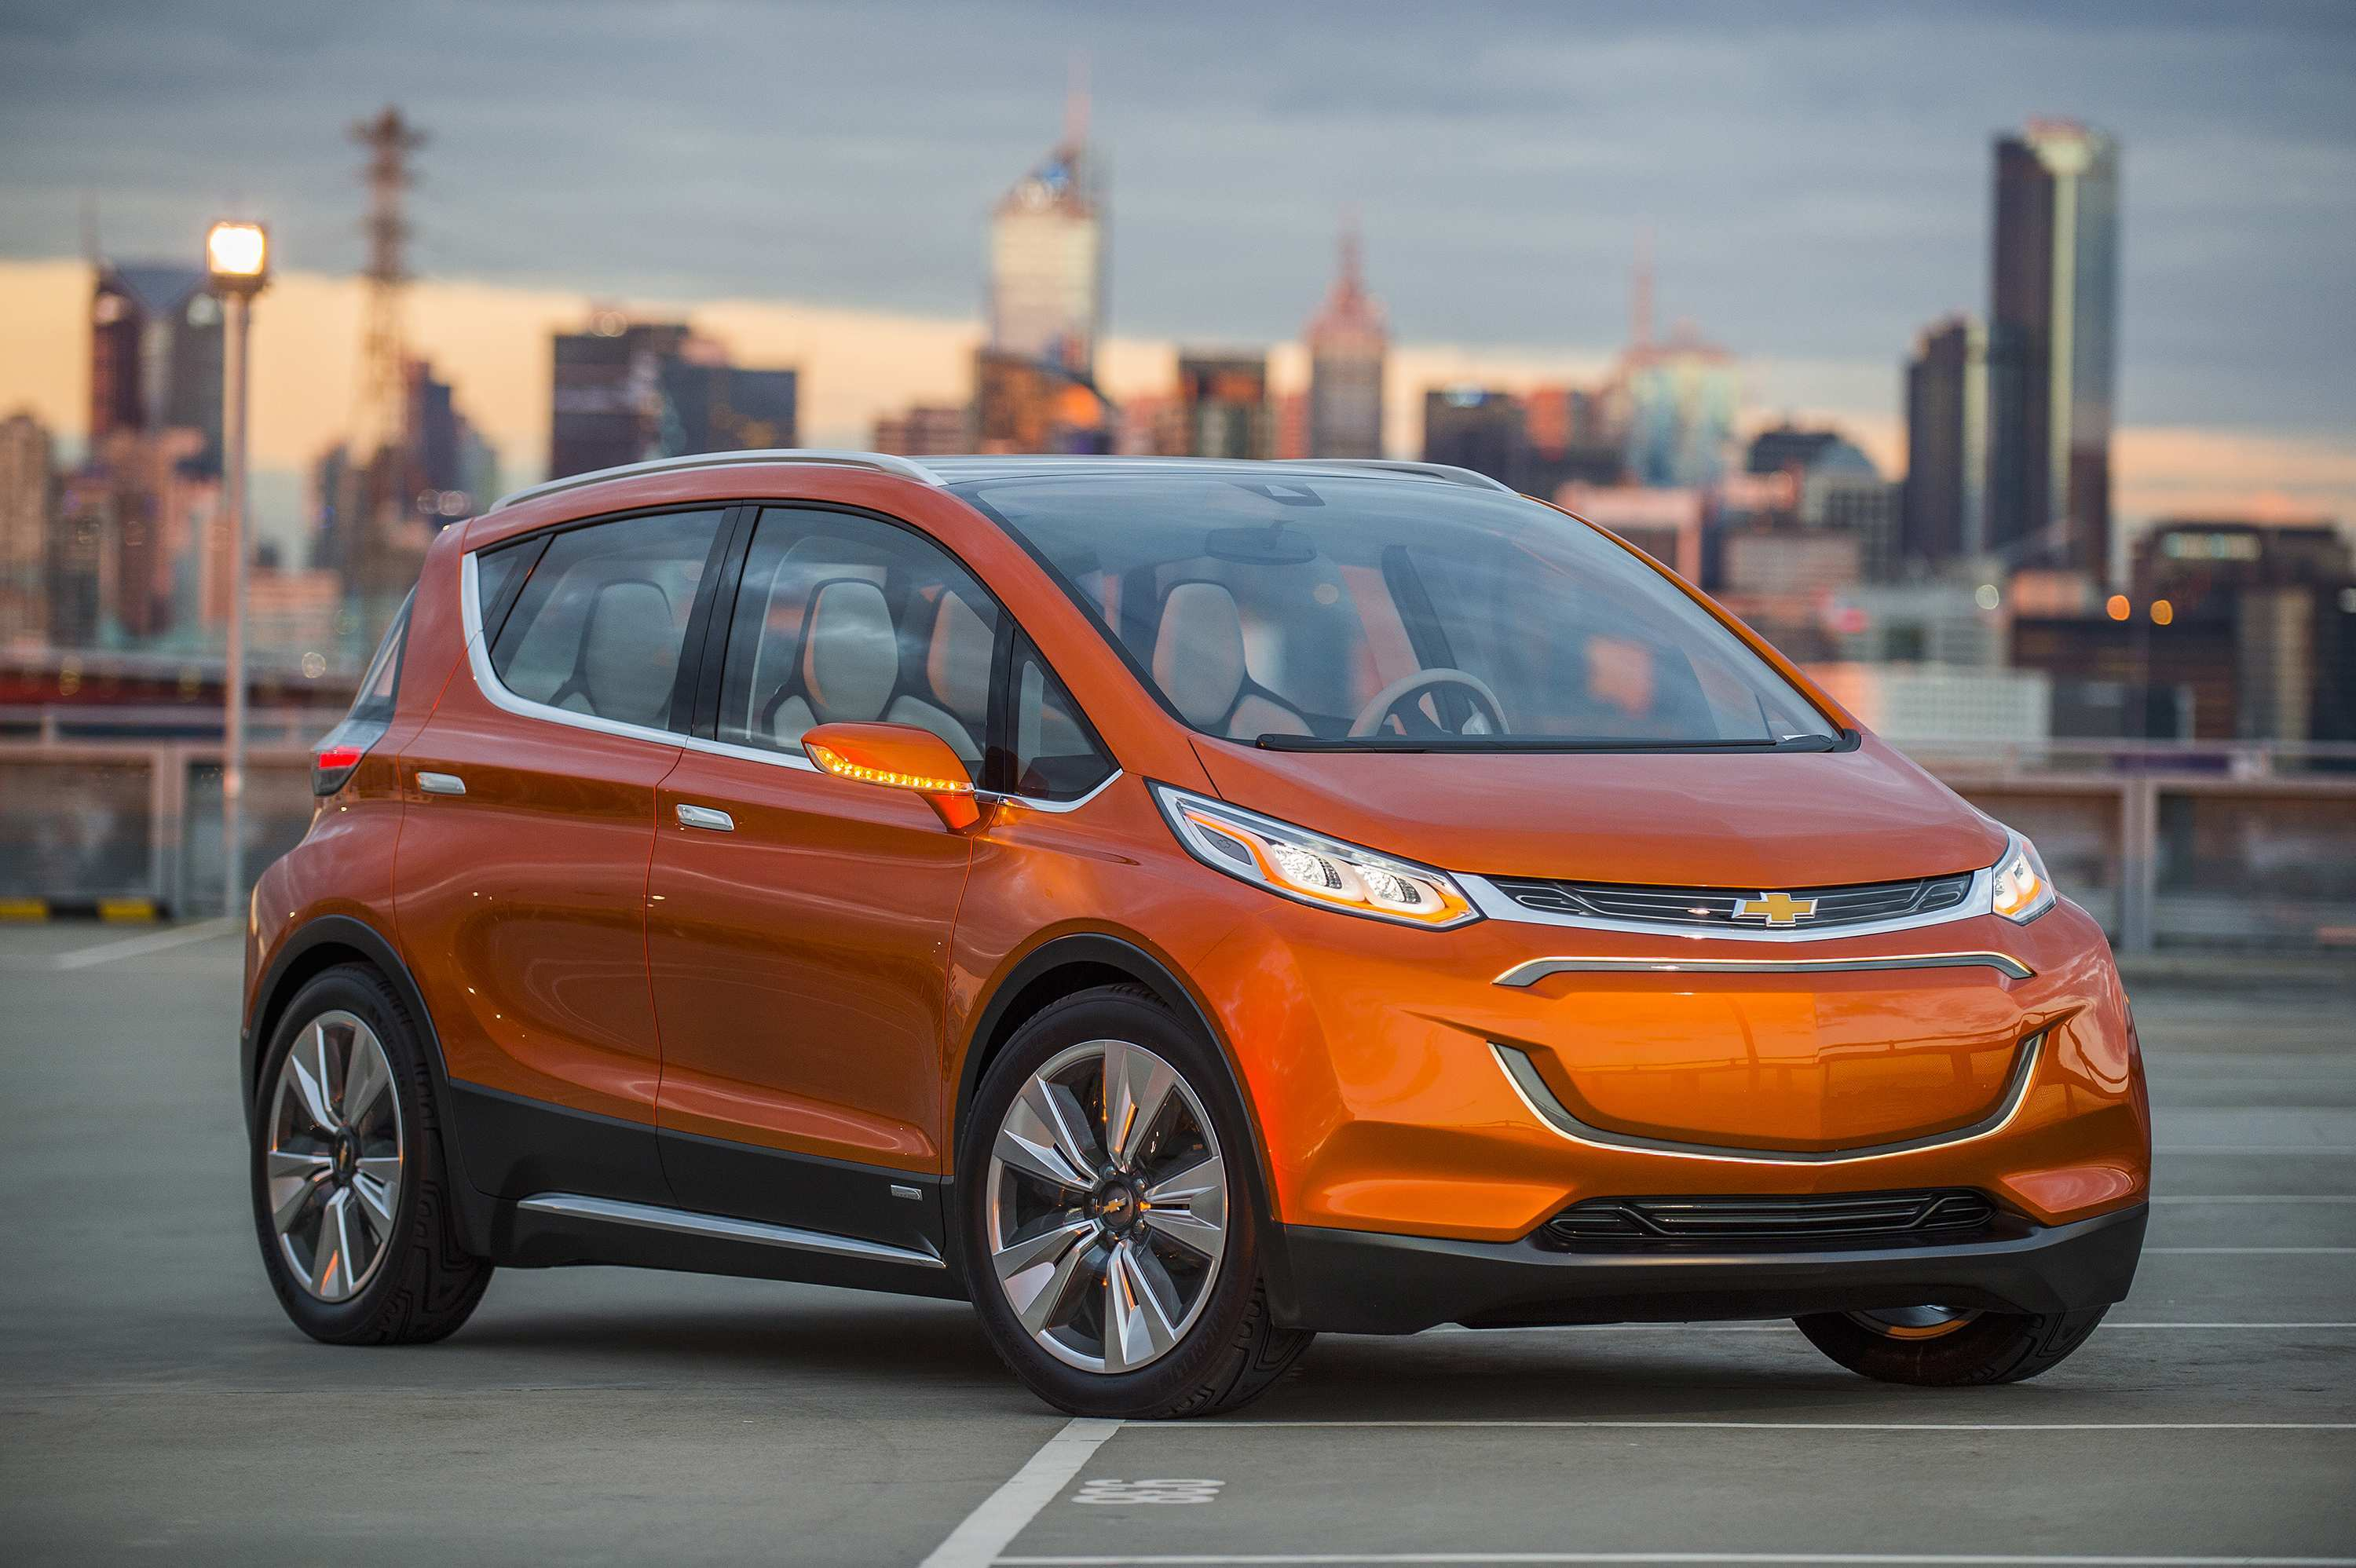 56 The Chevrolet Bolt Ev 2020 First Drive